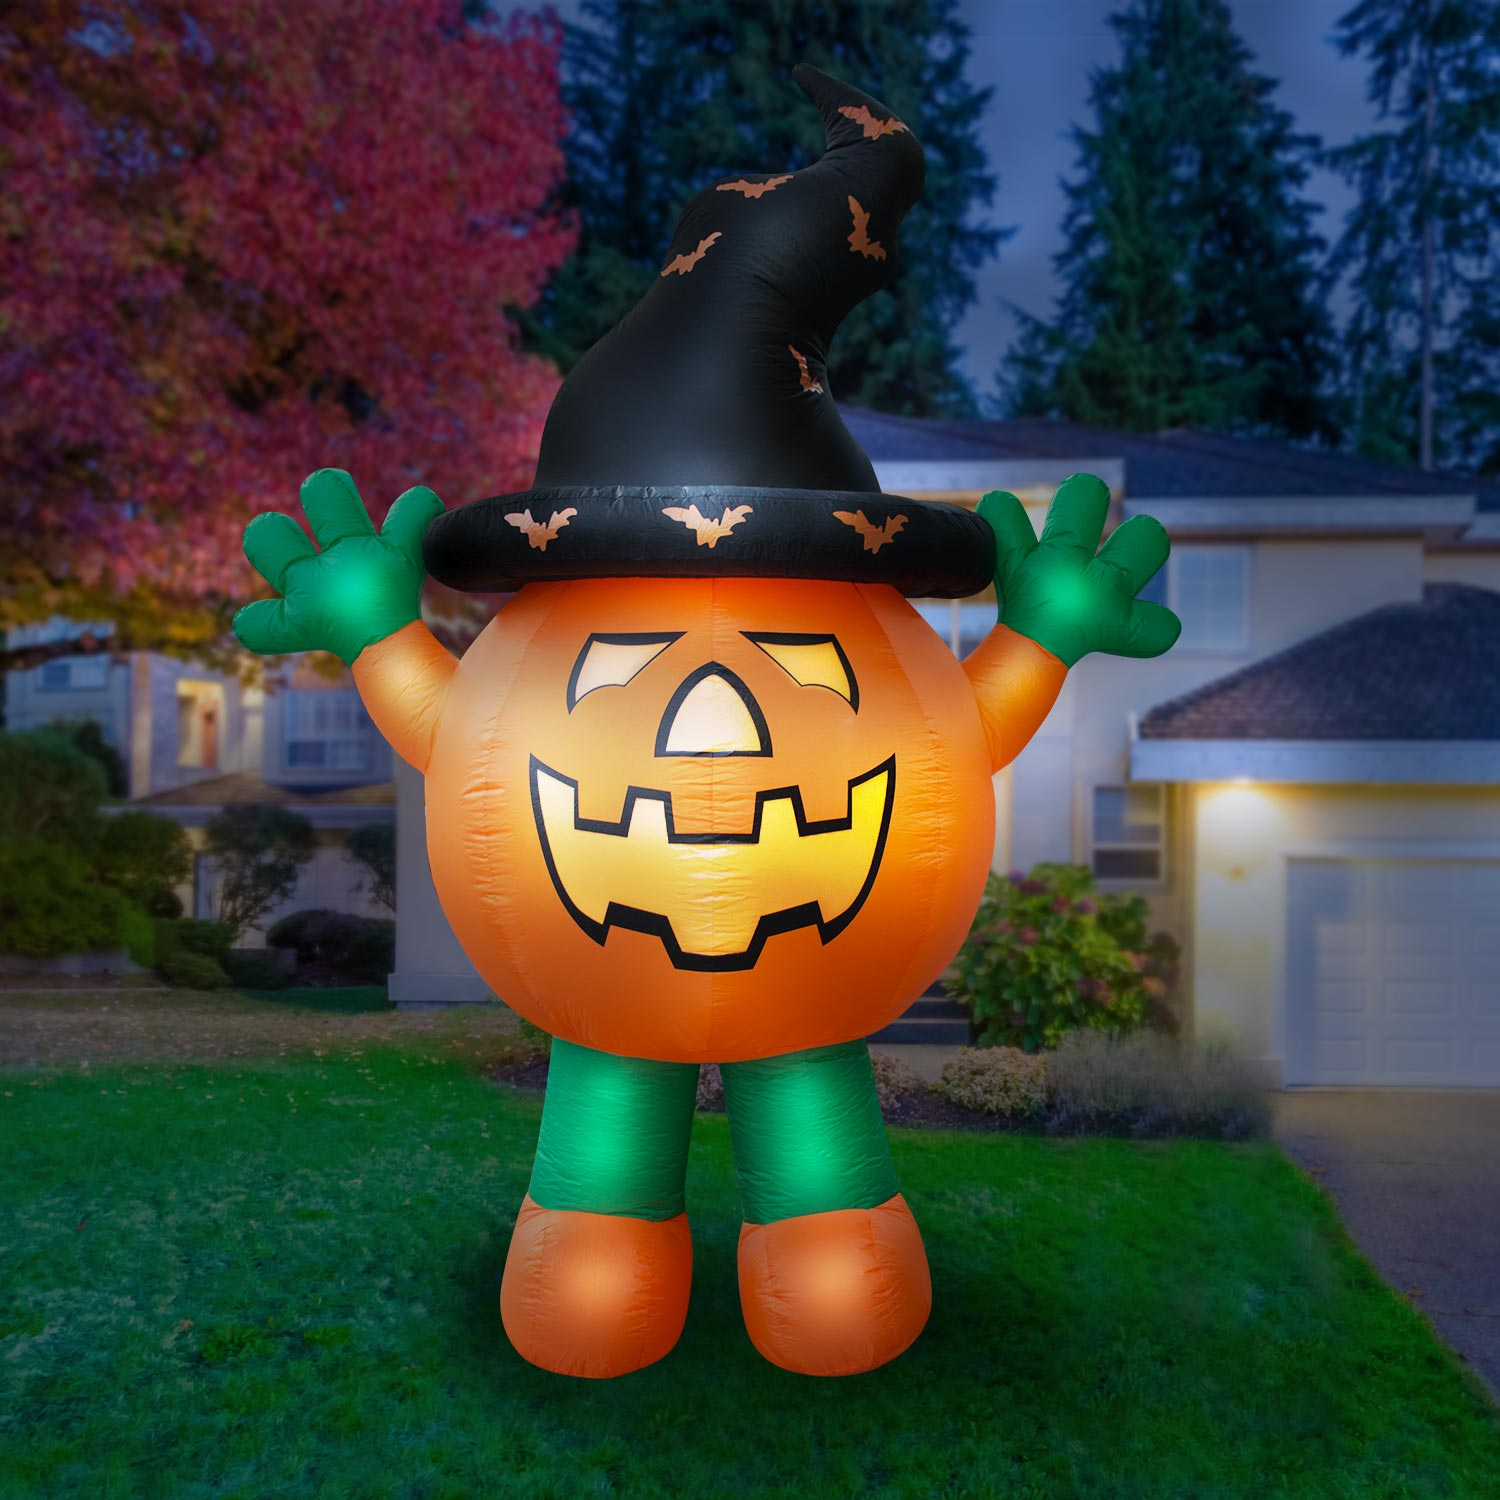 Holidayana Giant 10 Ft Airblown Inflatable Halloween Pumpkin Man – Inflatable Halloween Decoration with Super Bright Internal Lights, Built-in Fan & Anchor Ropes